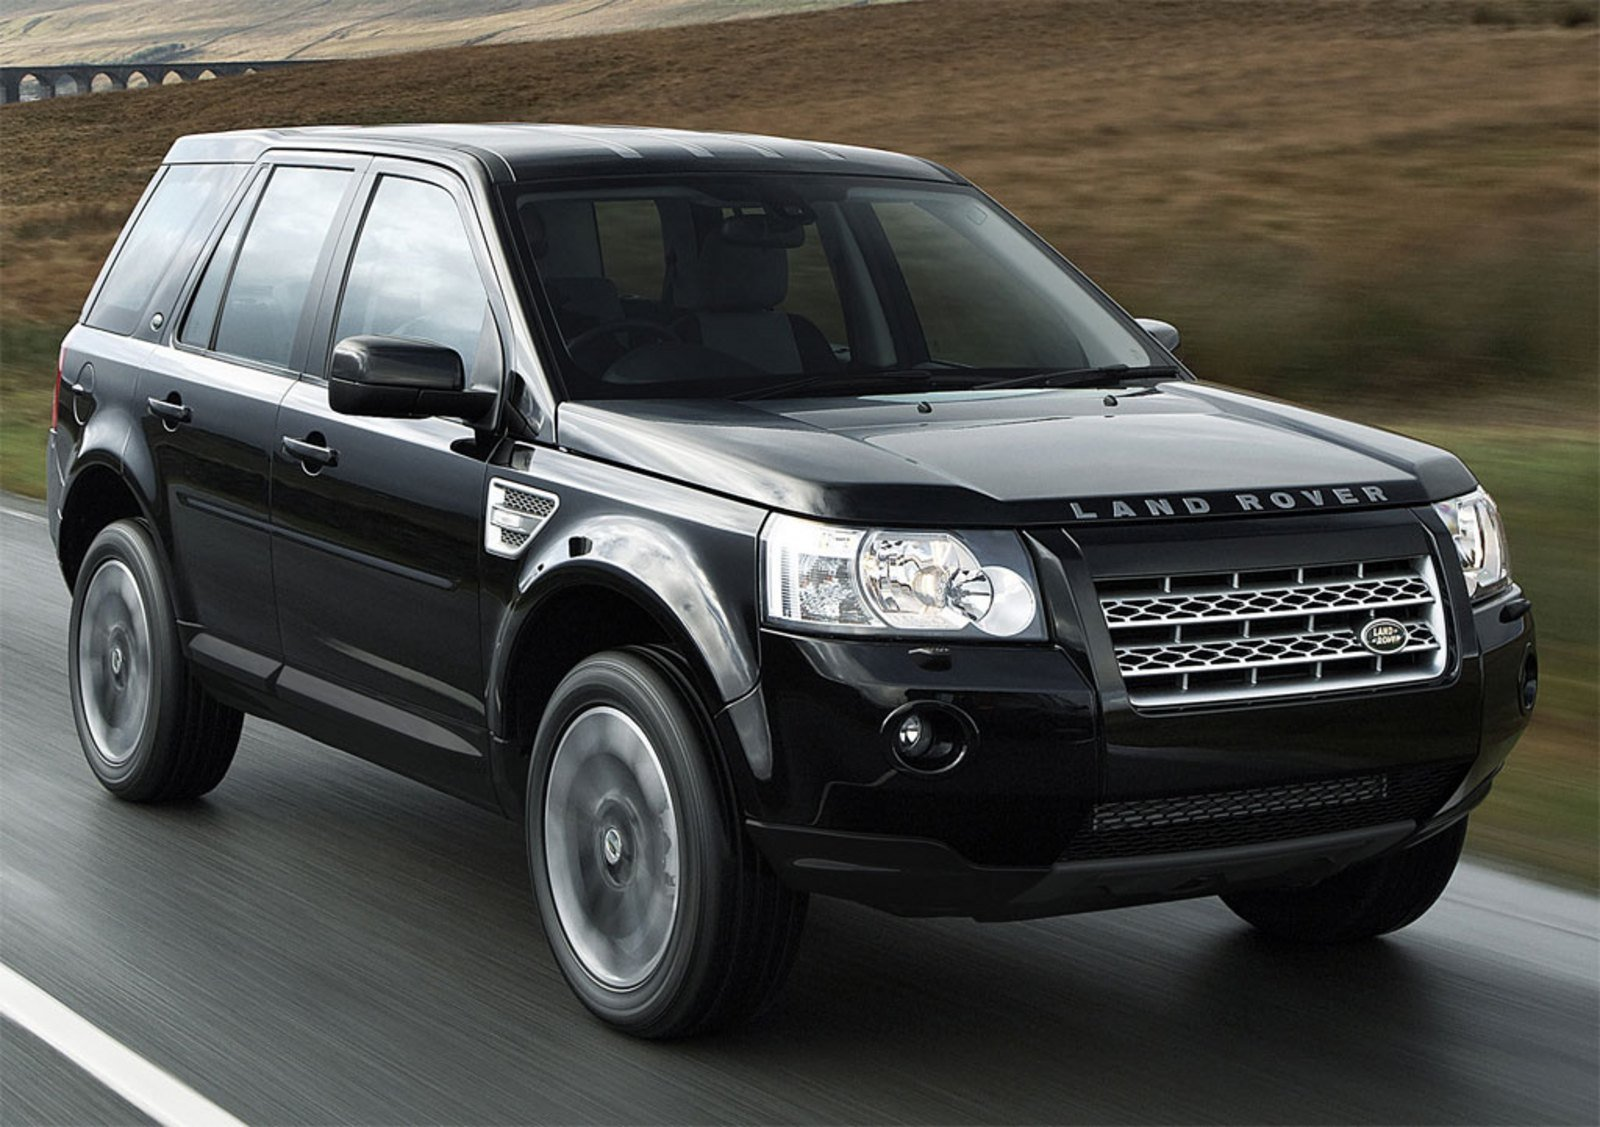 2010 land rover freelander 2 sport review top speed. Black Bedroom Furniture Sets. Home Design Ideas